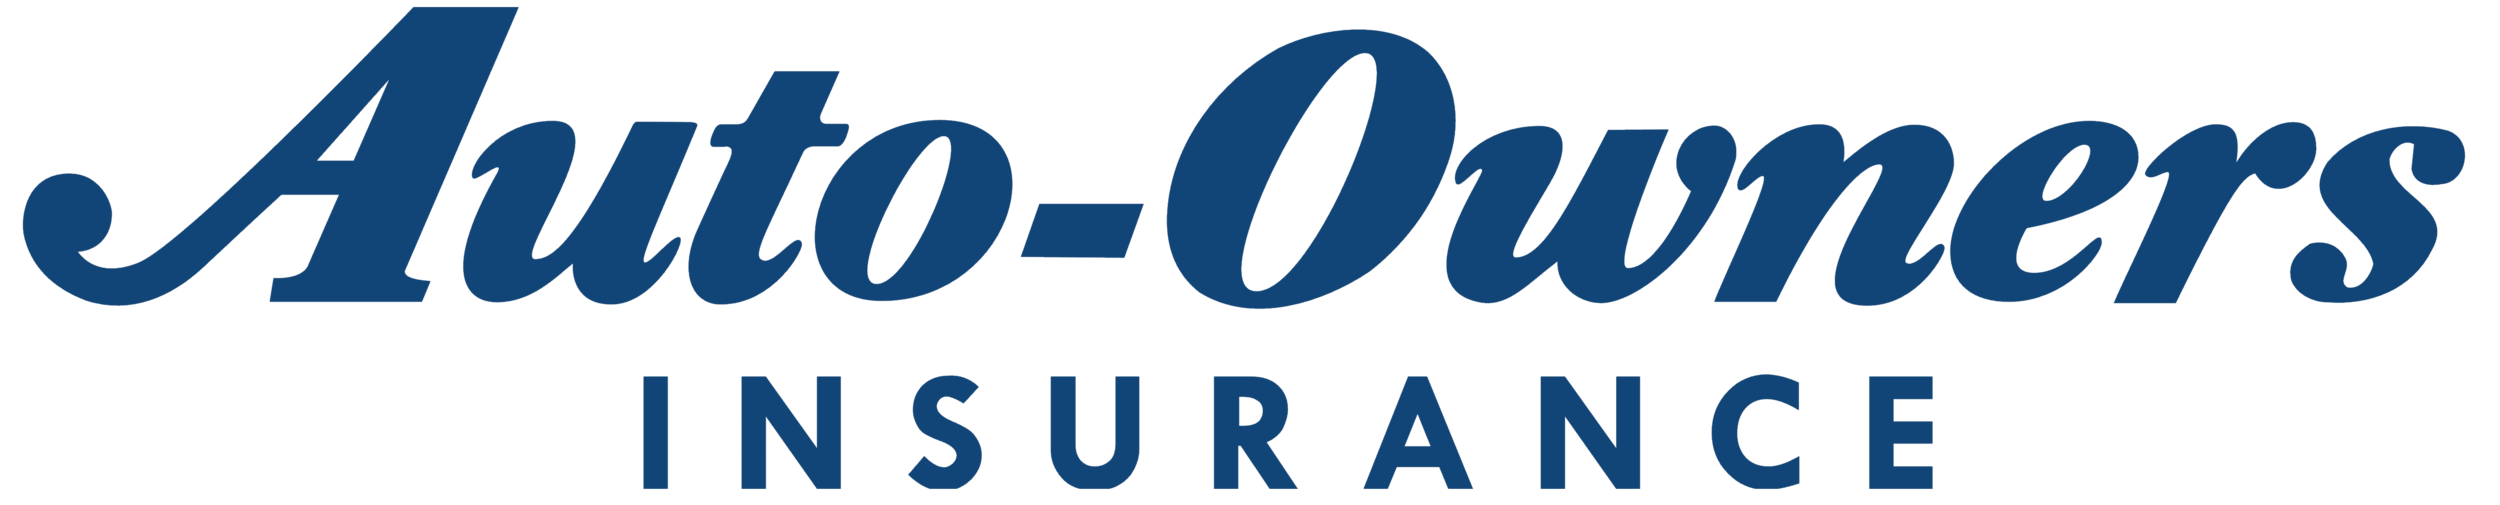 Auto-Owners_Insurance_logo_logotype.png